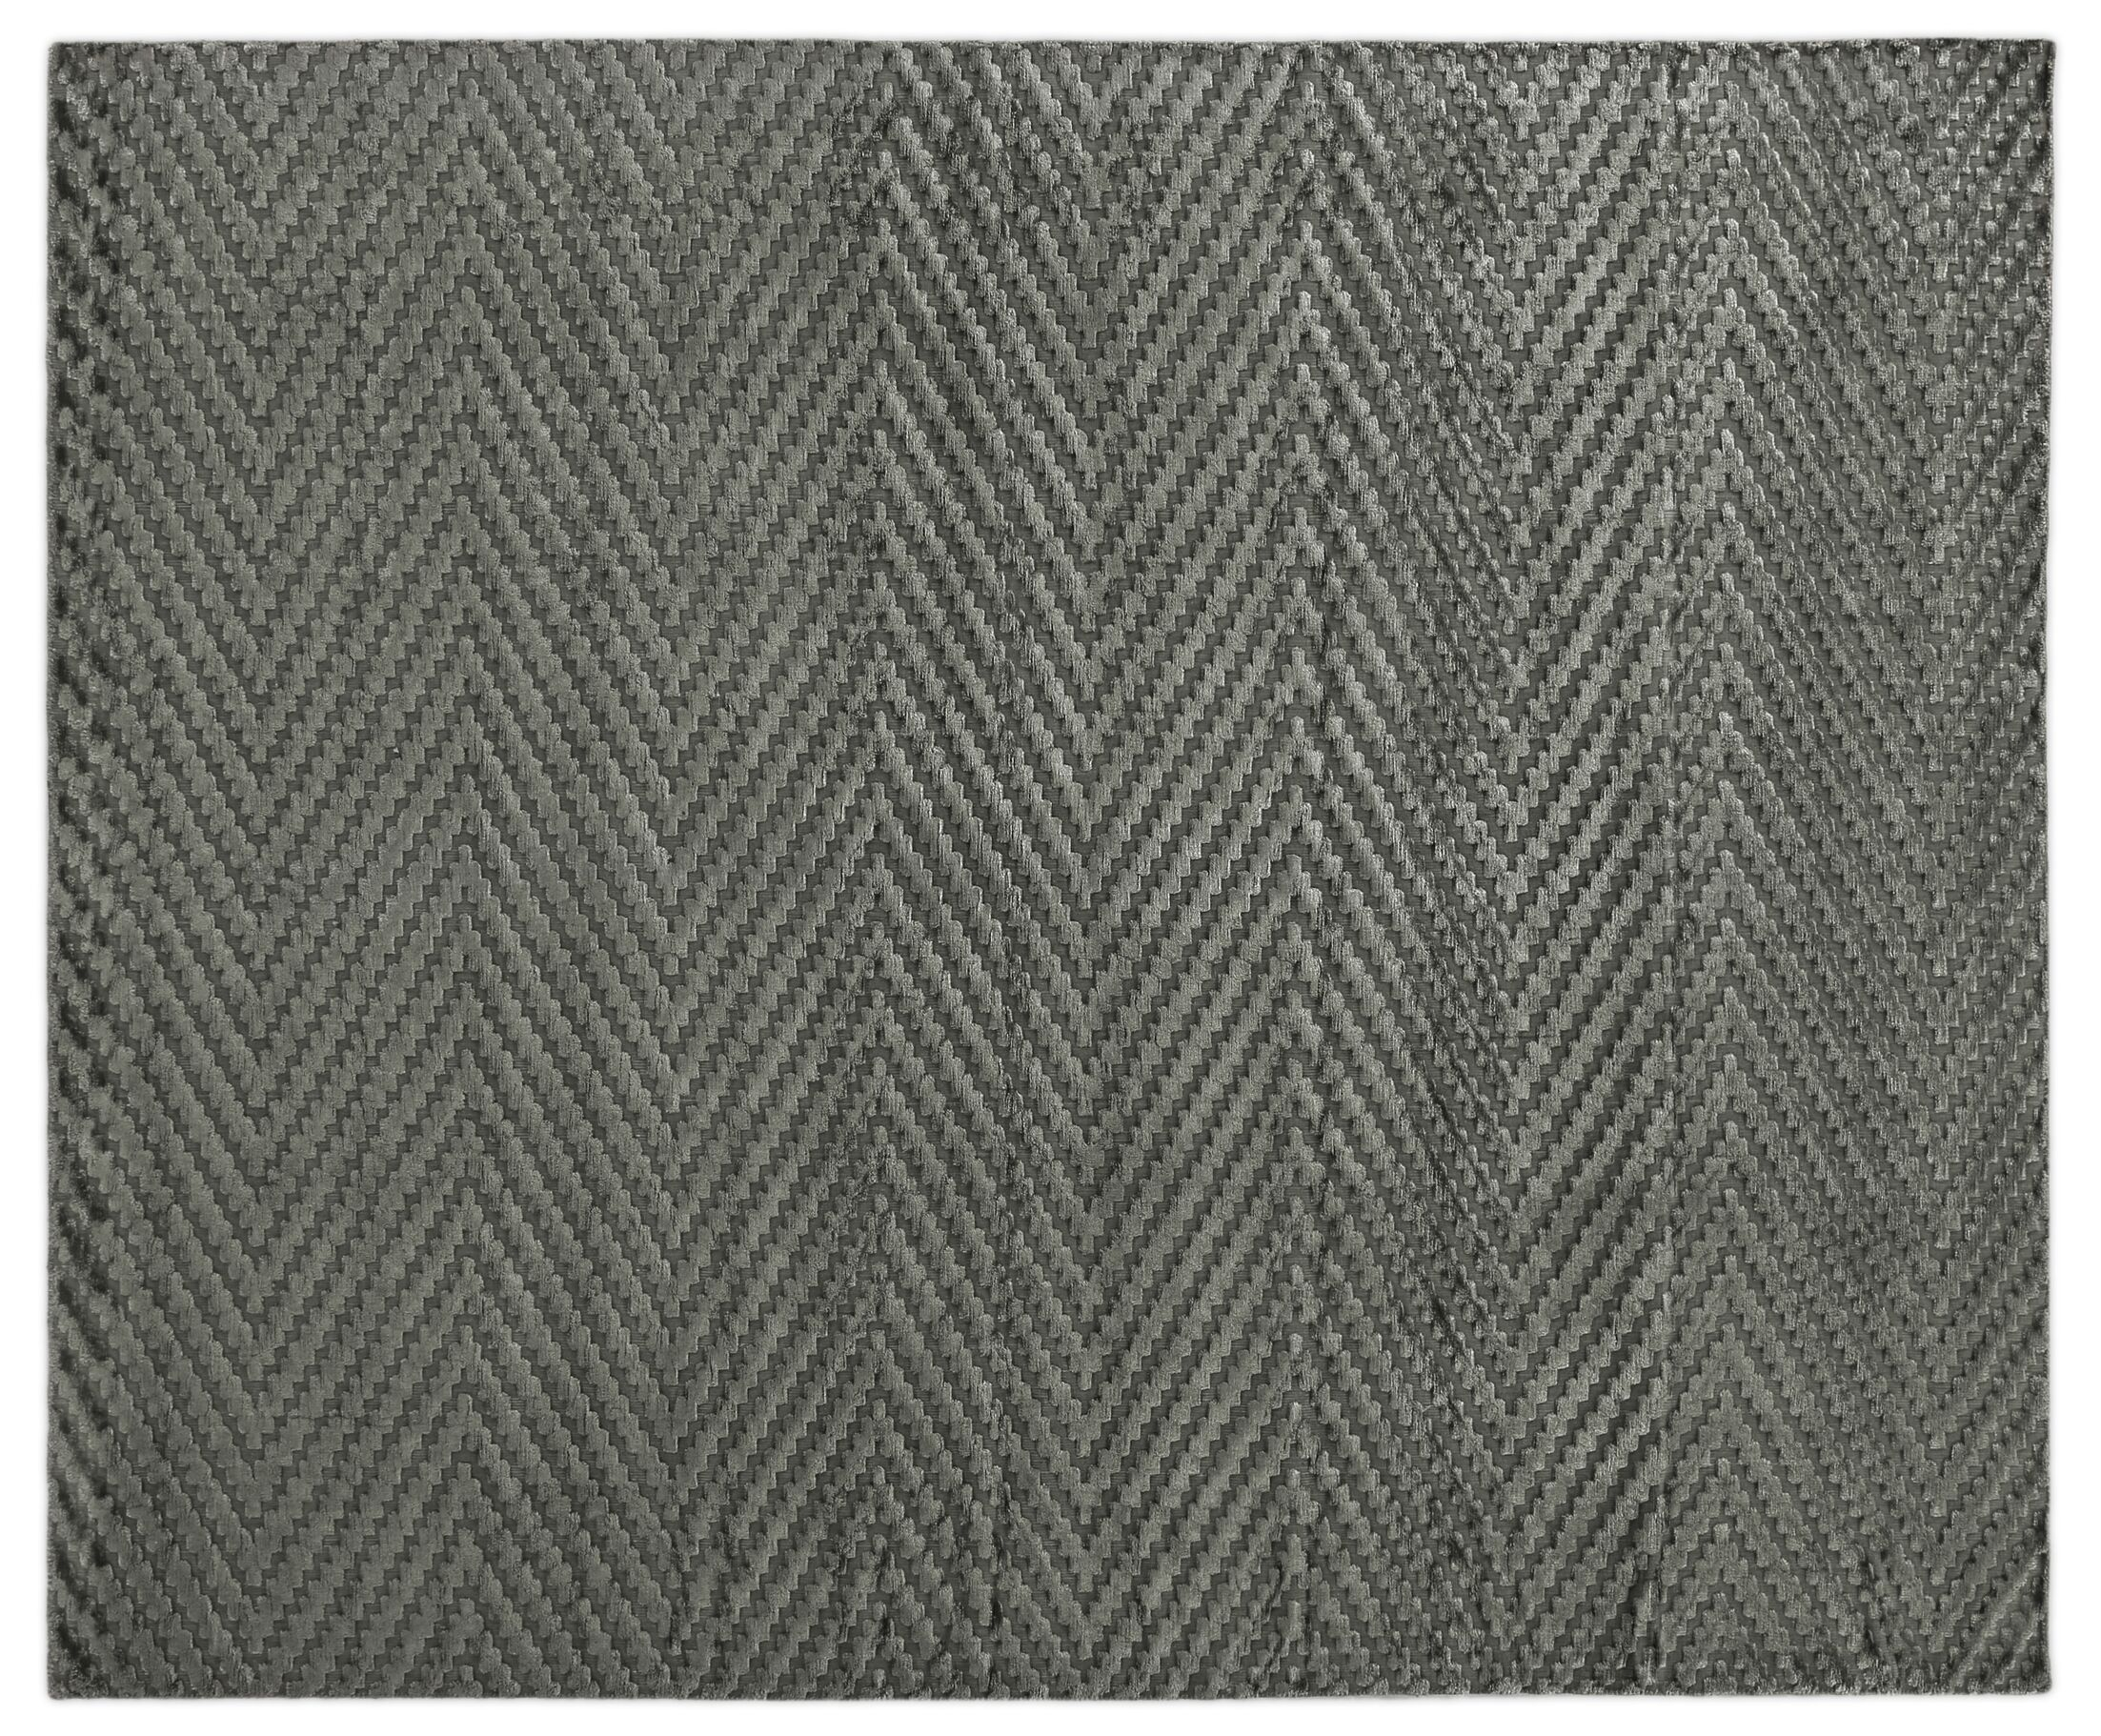 Kingsley Hand-Knotted Silk Dark Gray Area Rug Rug Size: Rectangle 6' x 9'